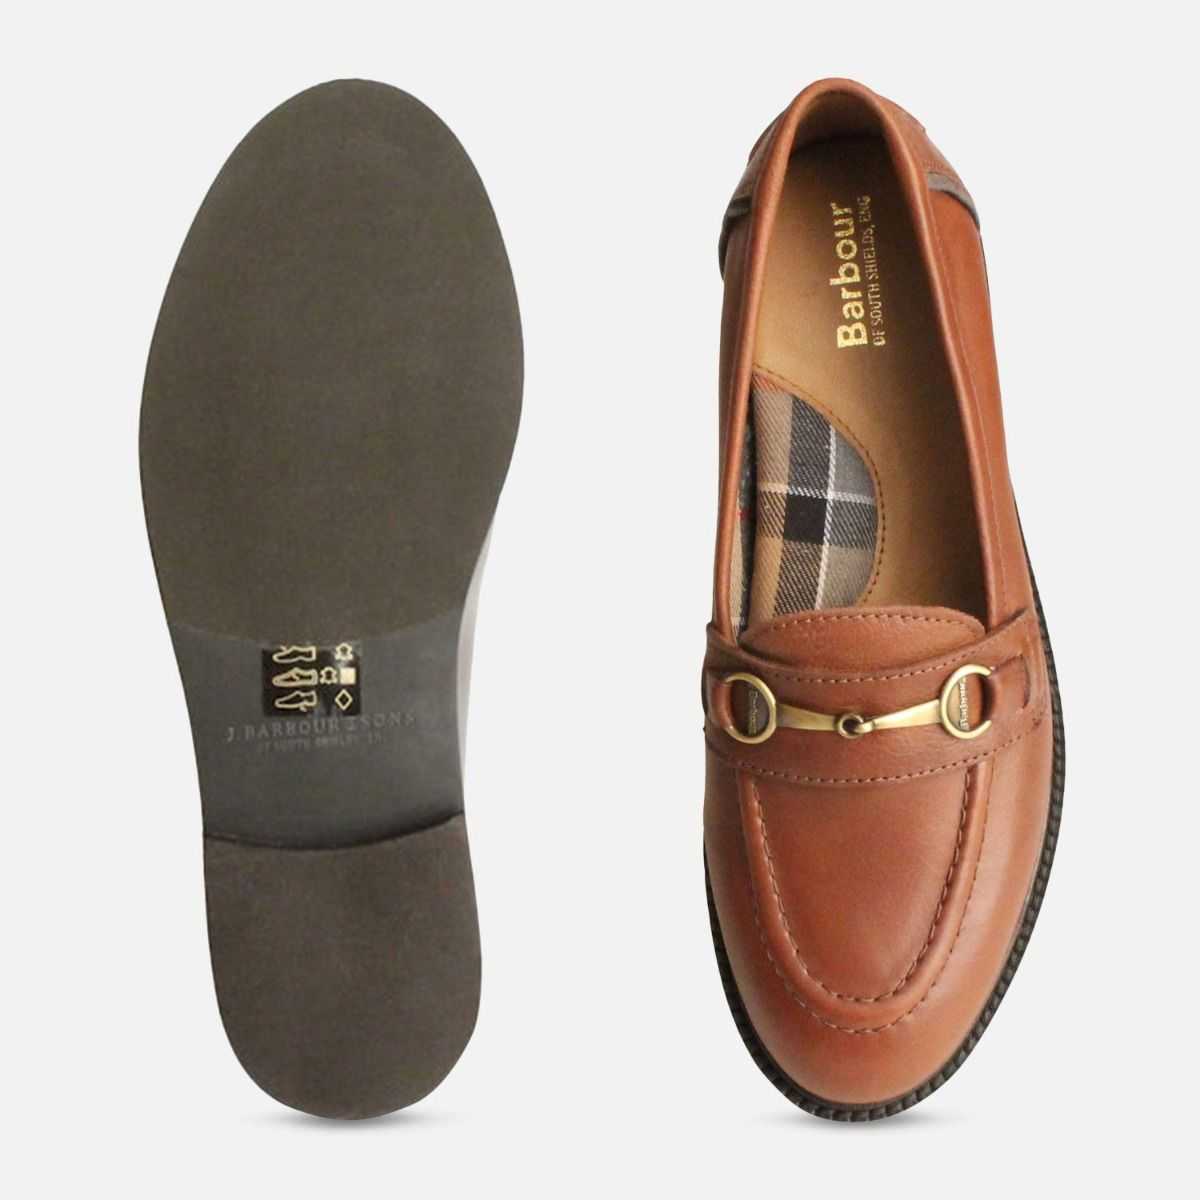 watch differently premium selection Barbour Chestnut Brown Ladies Heather Loafers